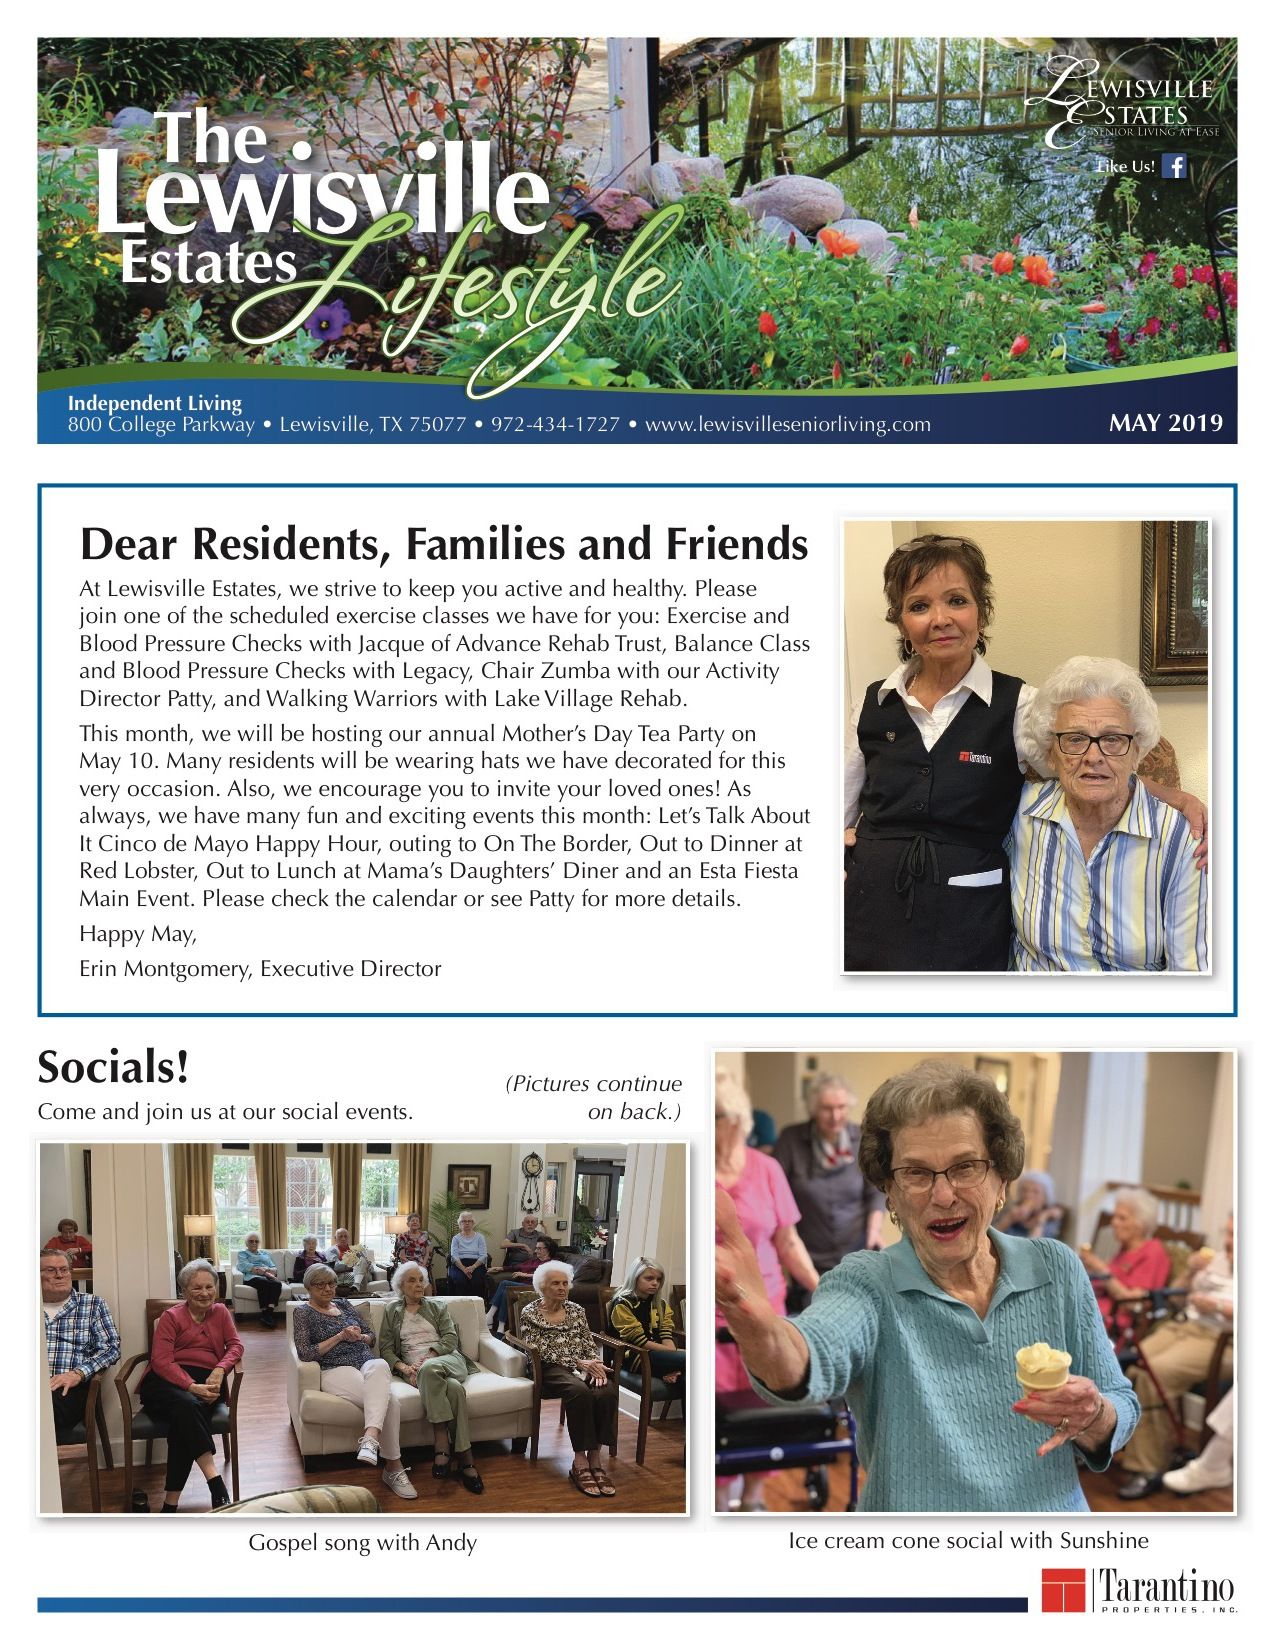 Independent Living Current Newsletter